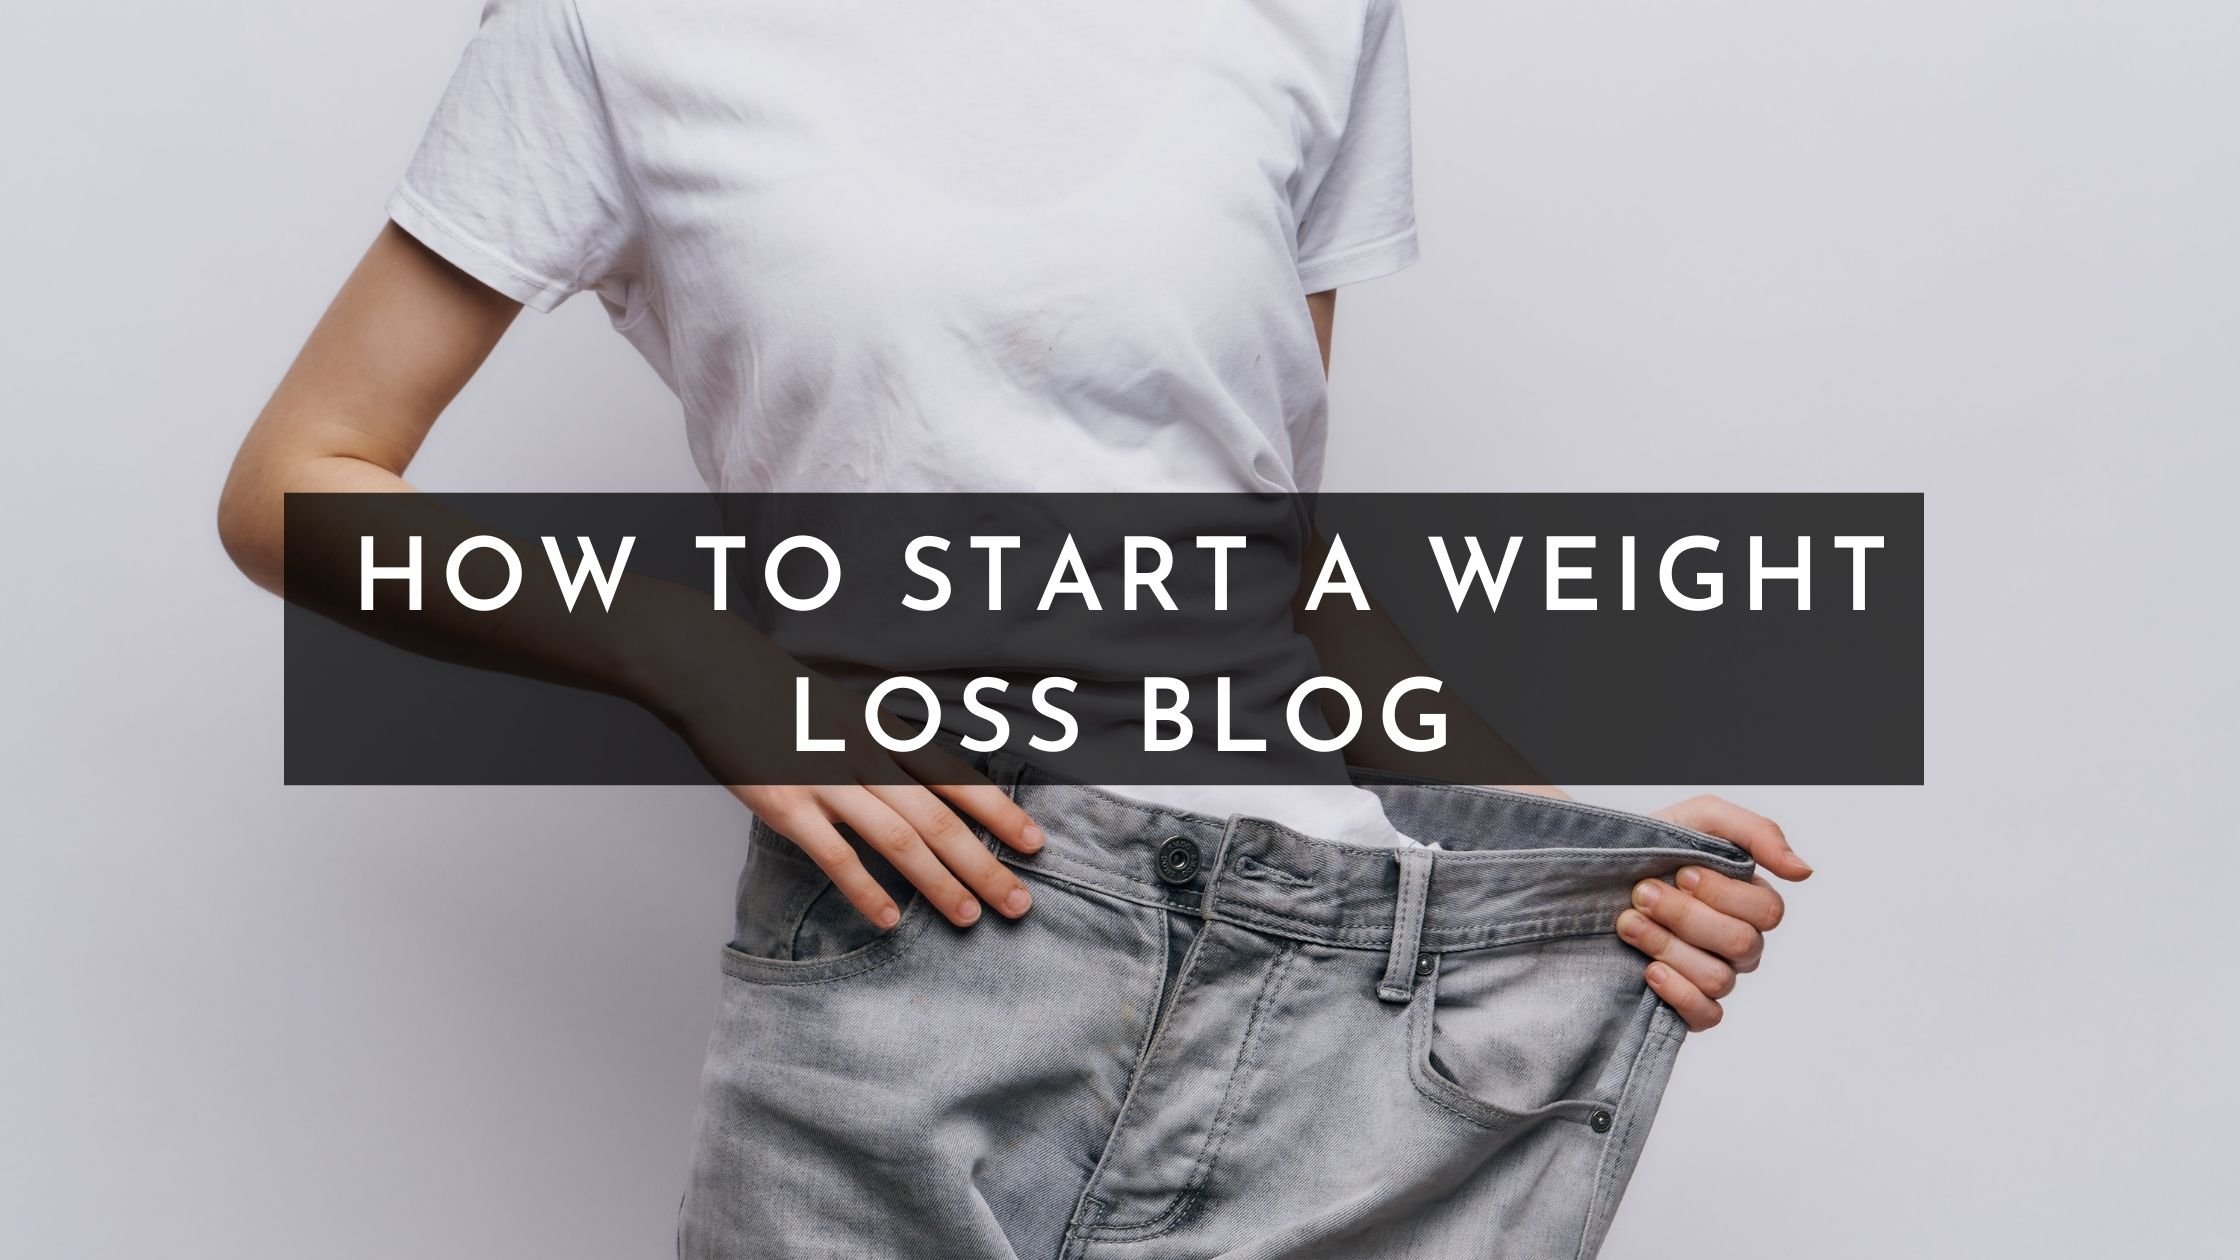 How to Start a Weight Loss Blog in 2021